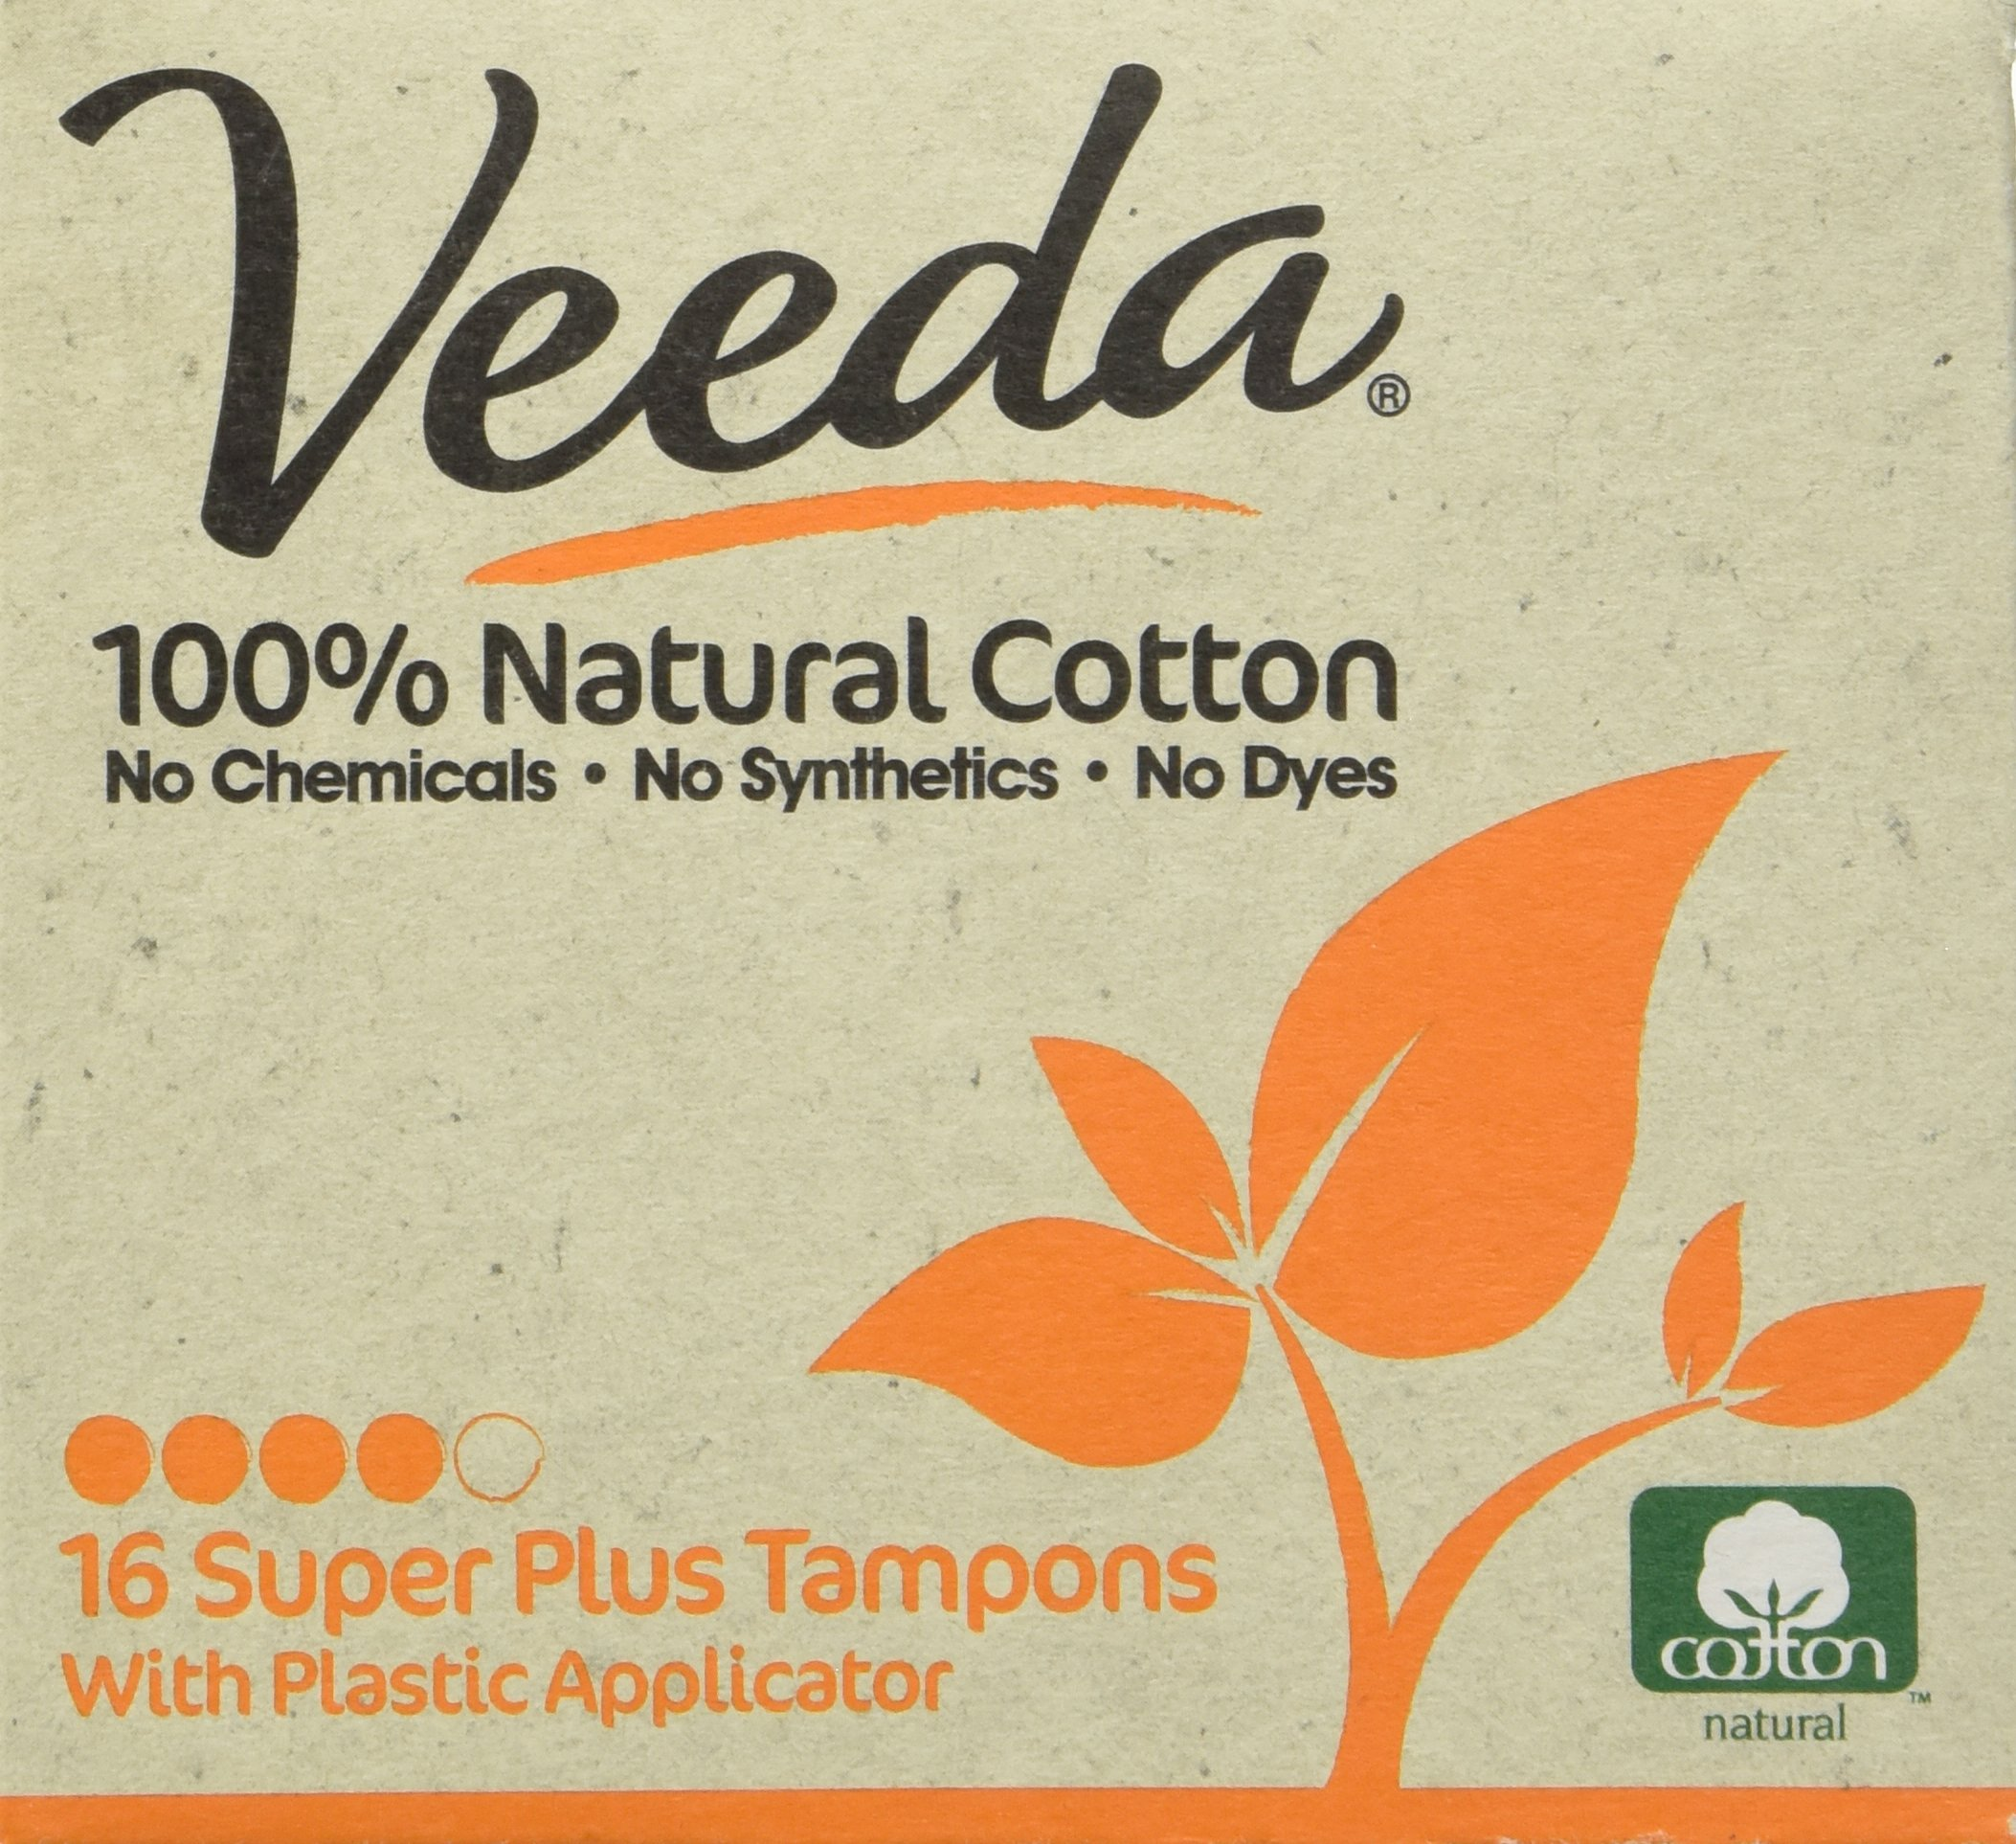 Veeda Natural All-Cotton Tampons, Super Plus, Compact Applicator, 16 Count